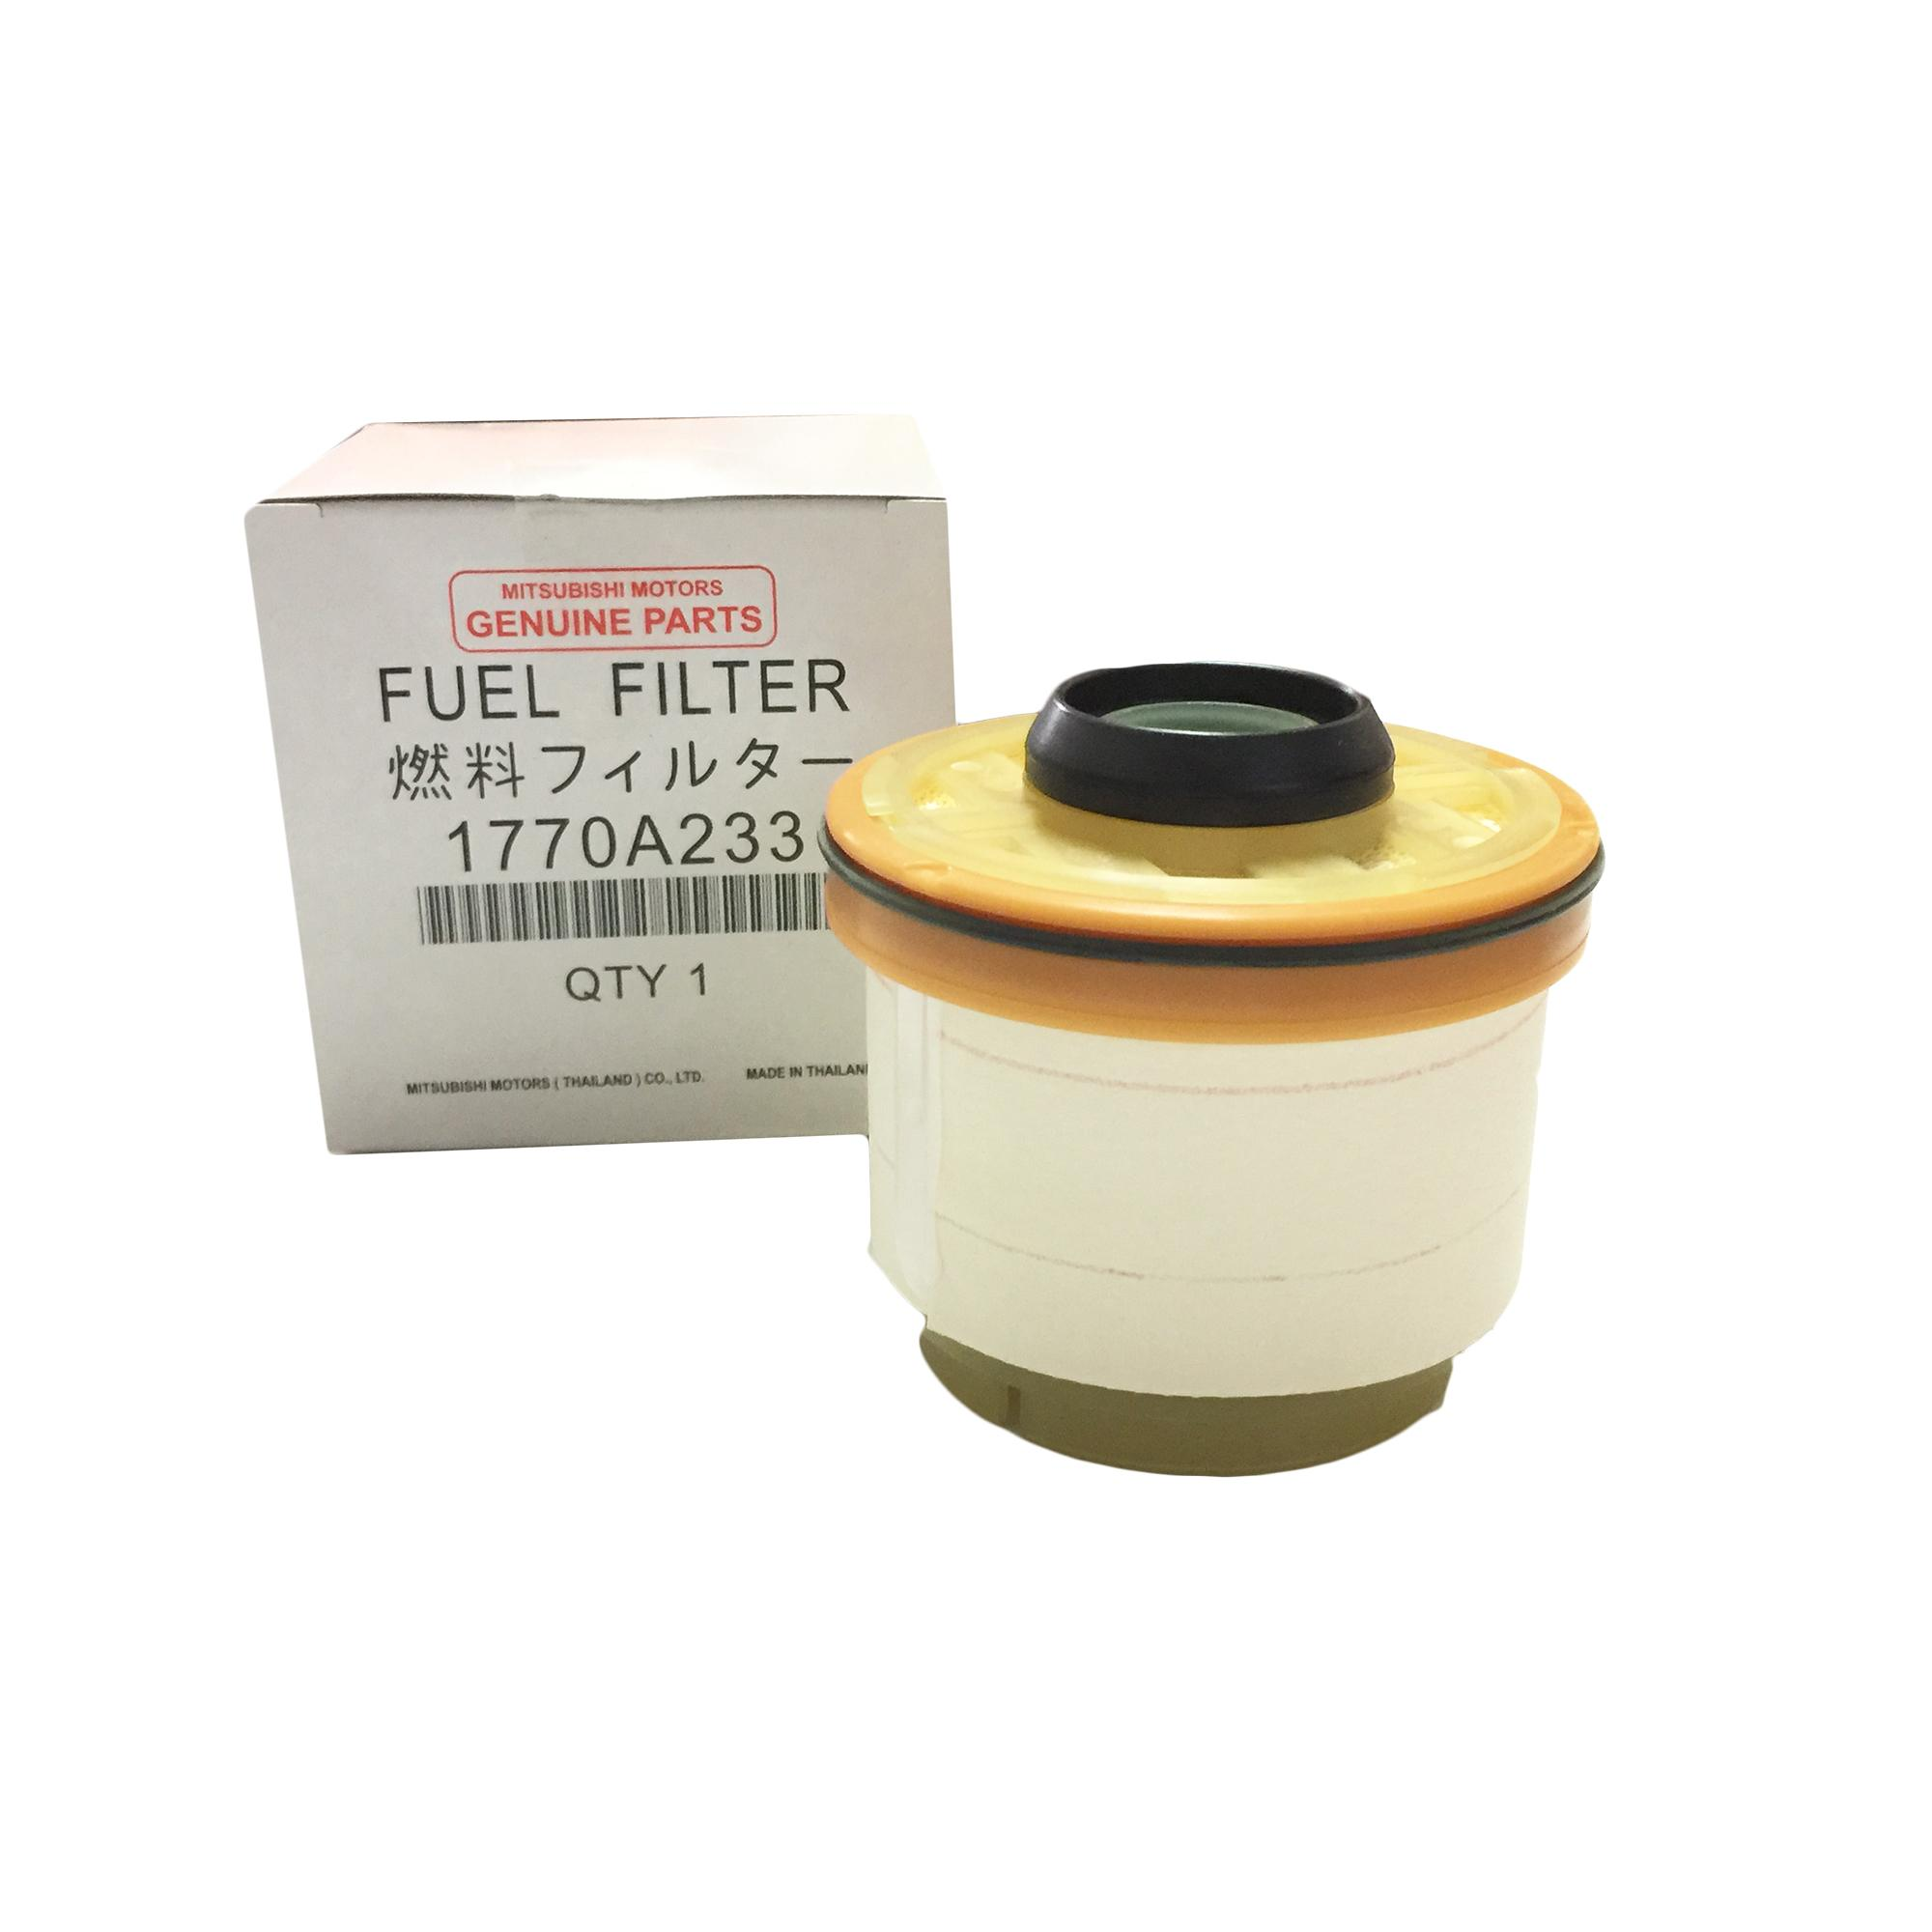 hight resolution of genuine mitsubishi auto parts fuel filter 1770a233 for mitsubishi montero 2013 2018